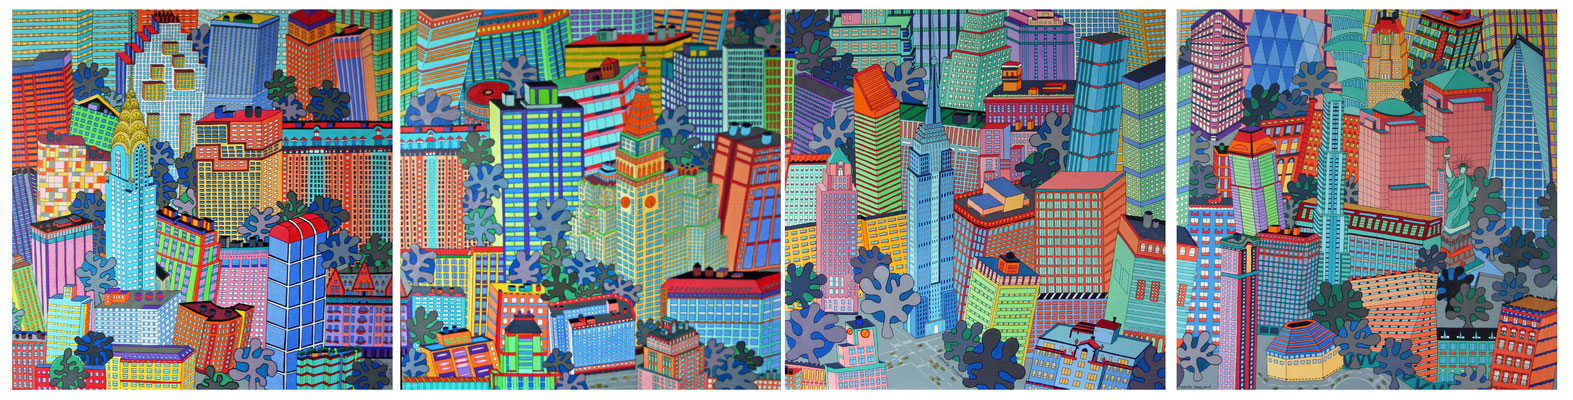 Quatre tableaux de New York formant un quadriptyque  - 320 x 80 - acrylique